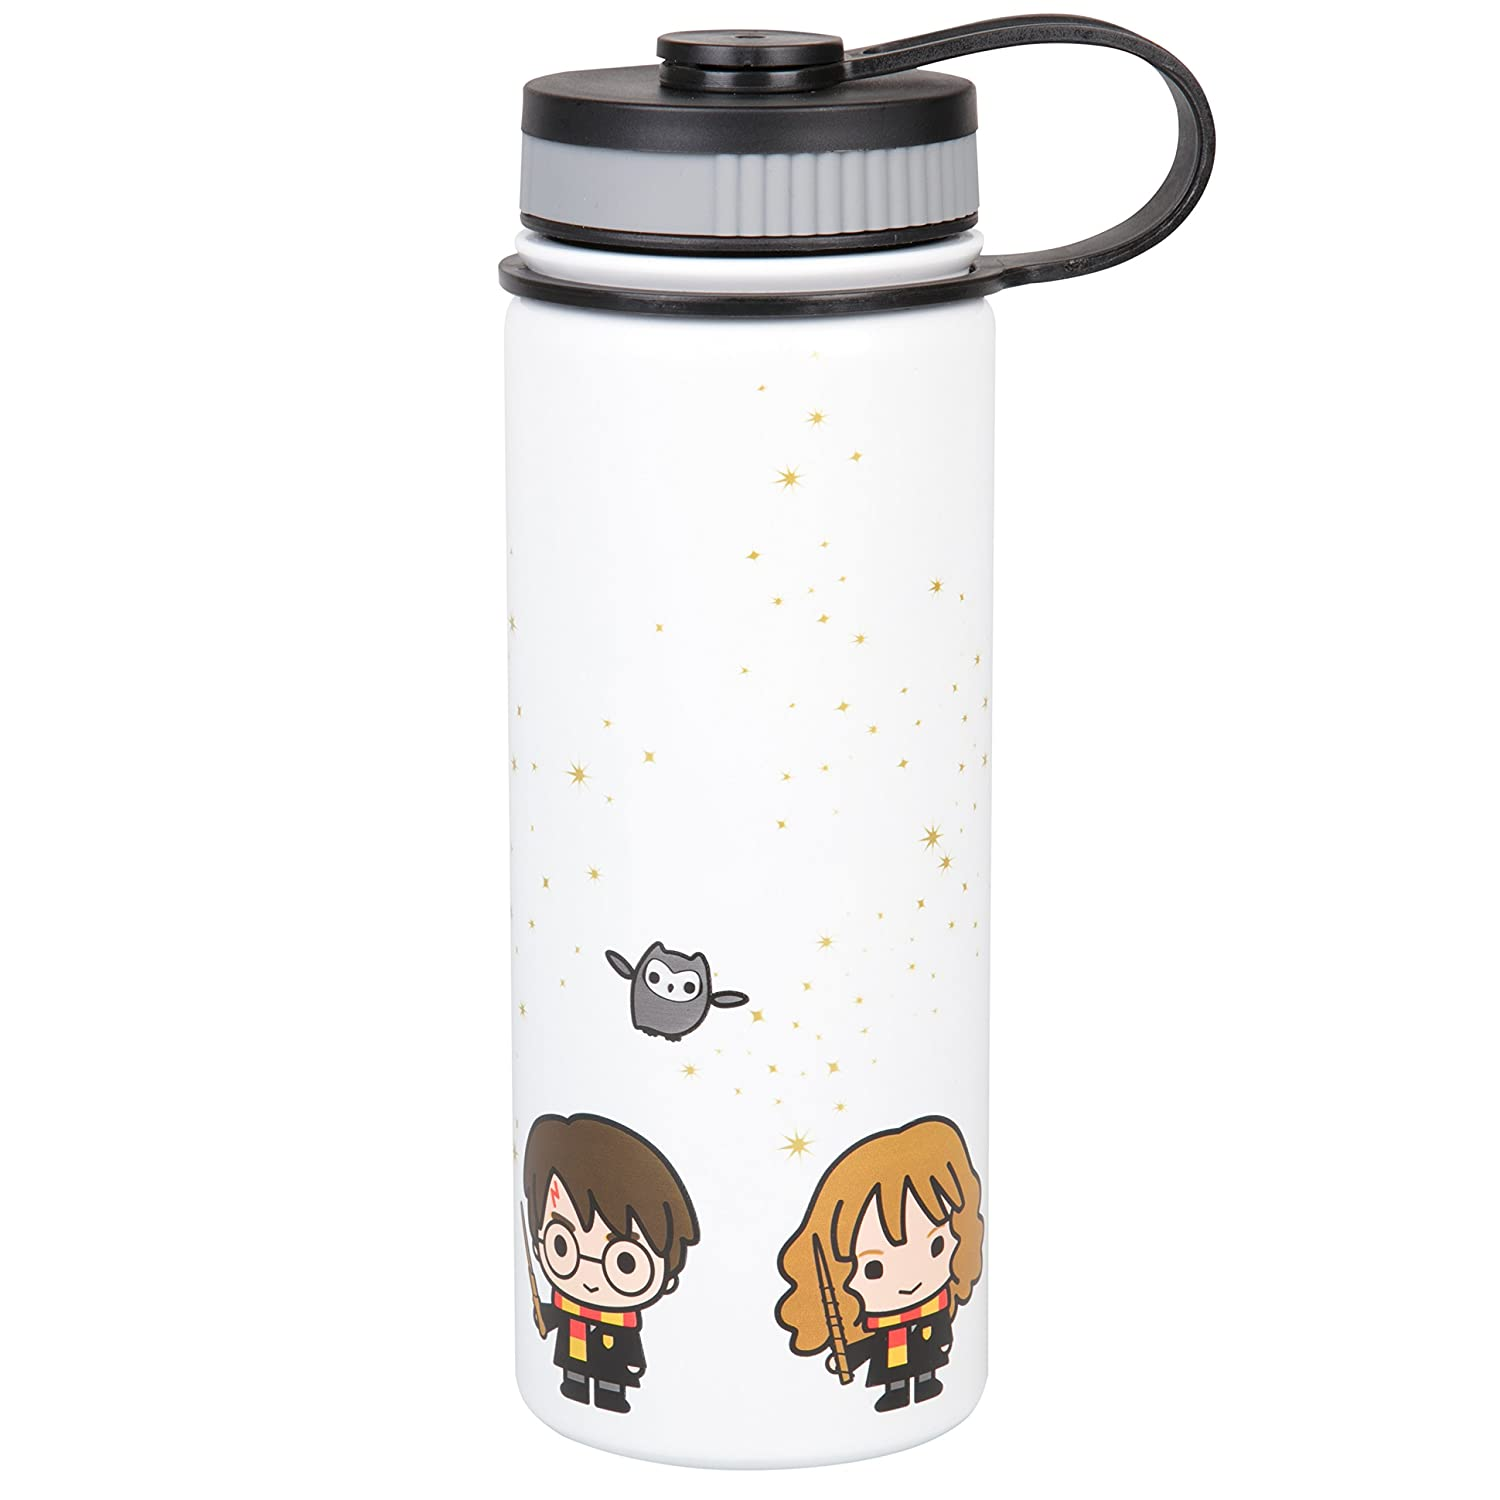 Harry Potter Stainless Steel Water Bottle   With Harry, Ron And Hermione Character Design   550ml by Underground Toys